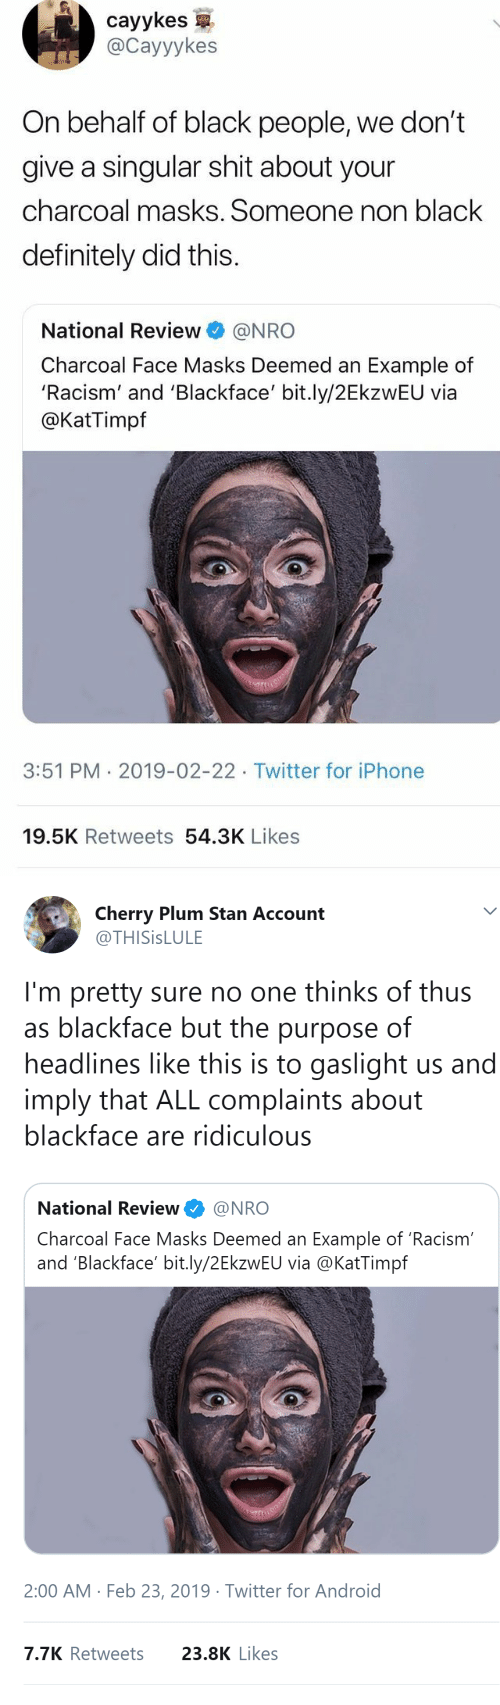 Android, Definitely, and Iphone: cayykes  @Cayyykes  On behalf of black people, we don't  give a singular shit about your  charcoal masks. Someone non black  definitely did this.  National Review@NRO  Charcoal Face Masks Deemed an Example of  'Racism' and 'Blackface' bit.ly/2EkzwEU via  @KatTimpf  3:51 PM 2019-02-22 Twitter for iPhone  19.5K Retweets 54.3K Likes   Cherry Plum Stan Account  @THISİSLULE  I'm pretty sure no one thinks of thus  as blackface but the purpose of  headlines like this is to gaslight us and  imply that ALL complaints about  blackface are ridiculous  National Review@NRO  Charcoal Face Masks Deemed an Example of 'Racism  and 'Blackface' bit.ly/2EkzwEU via @KatTimpf  2:00 AM Feb 23, 2019 Twitter for Android  7.7K Retweets  23.8K Likes